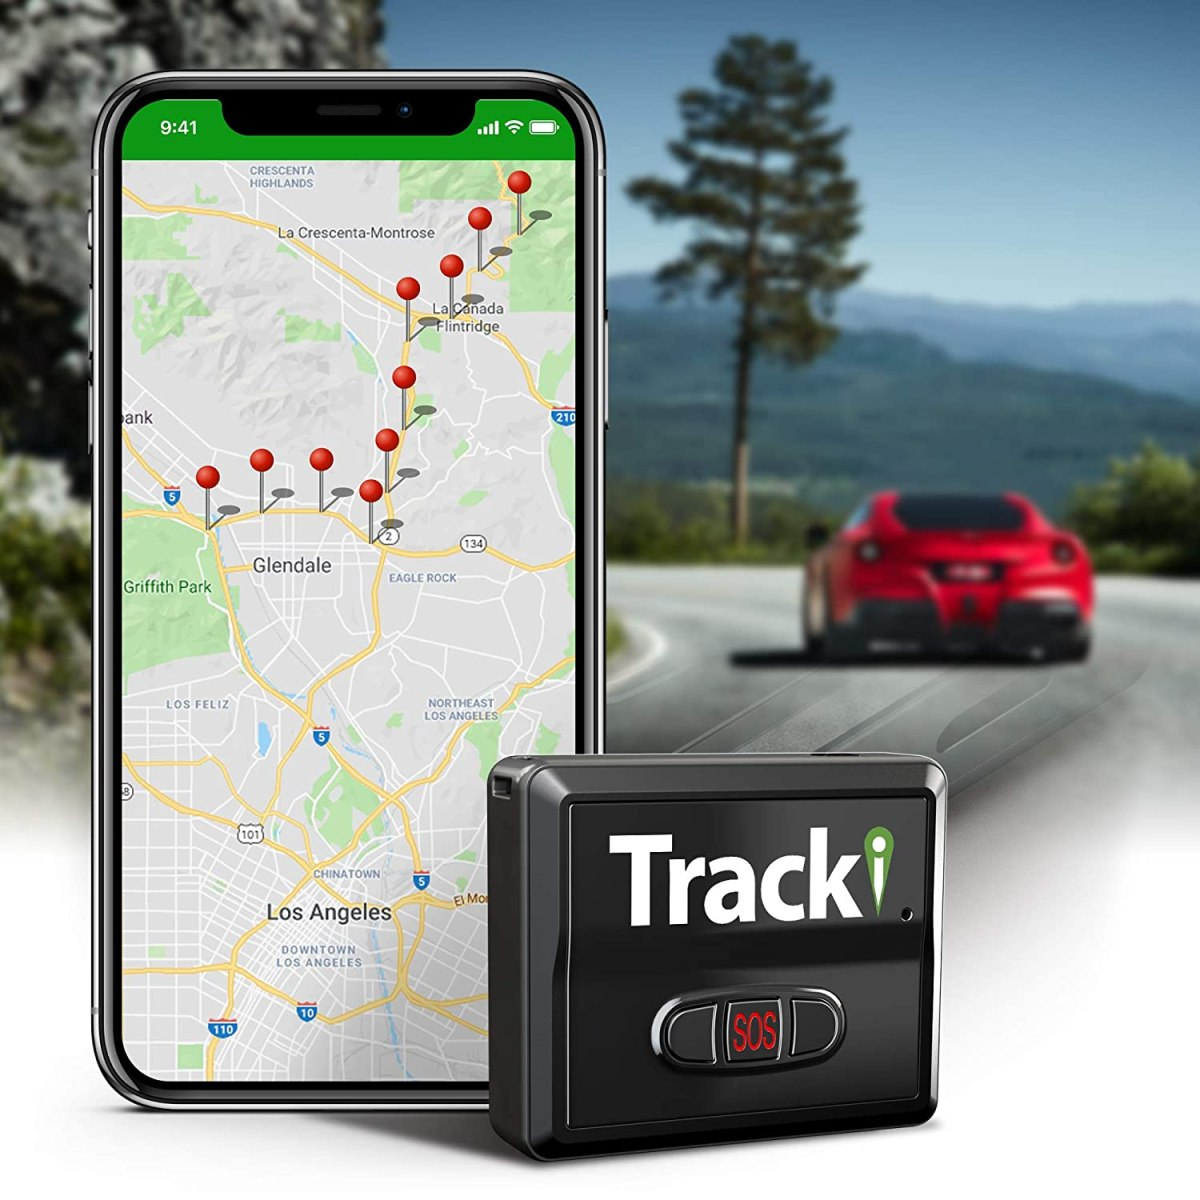 Best Car Trackers Reviews Tracki 2020 Model Mini Real-time GPS Tracker. Full USA & Worldwide Coverage